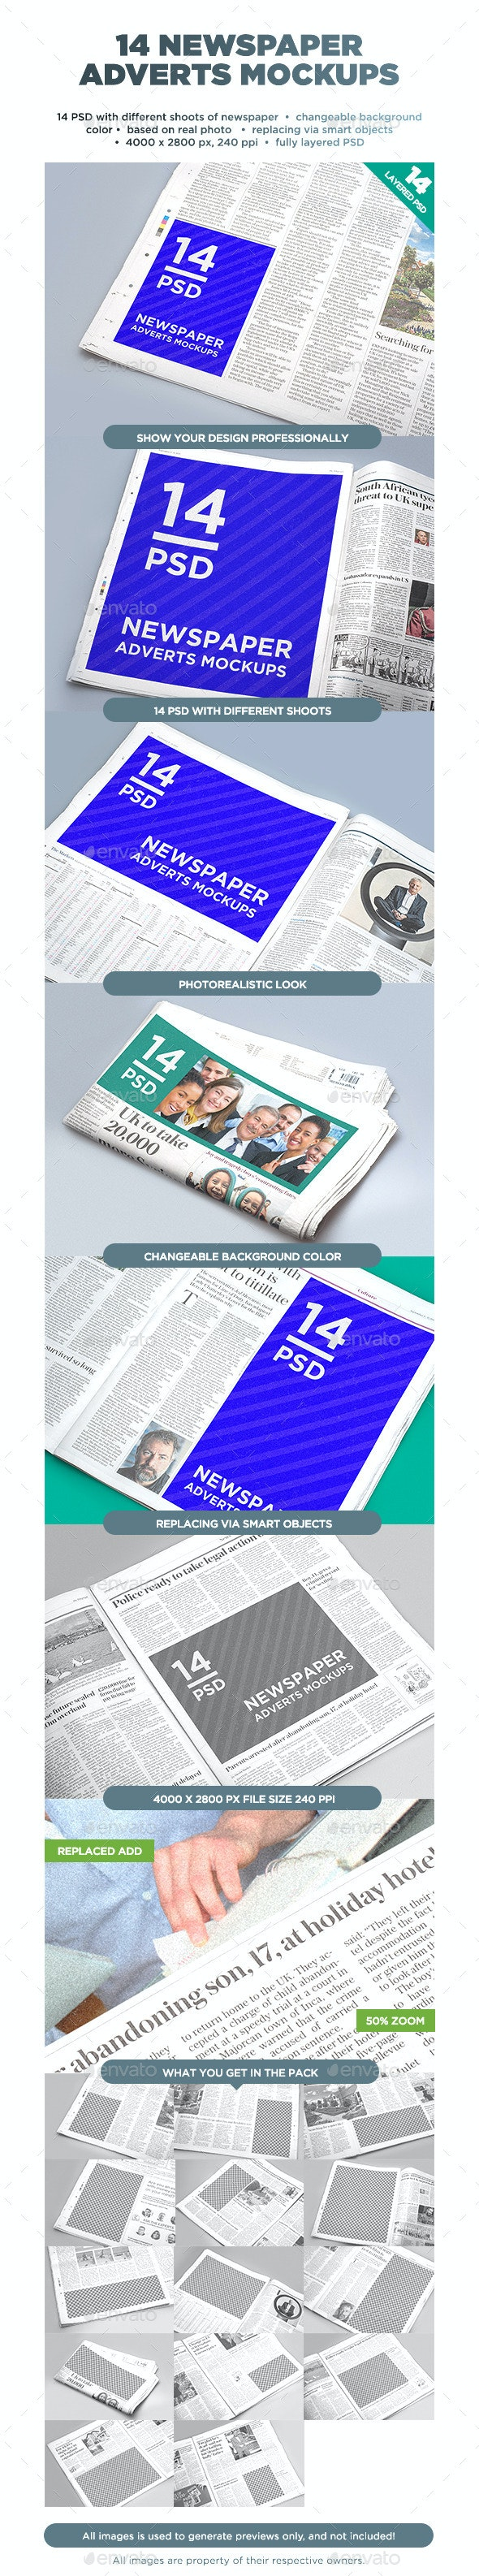 14 Newspaper Adverts Mockups - Miscellaneous Print